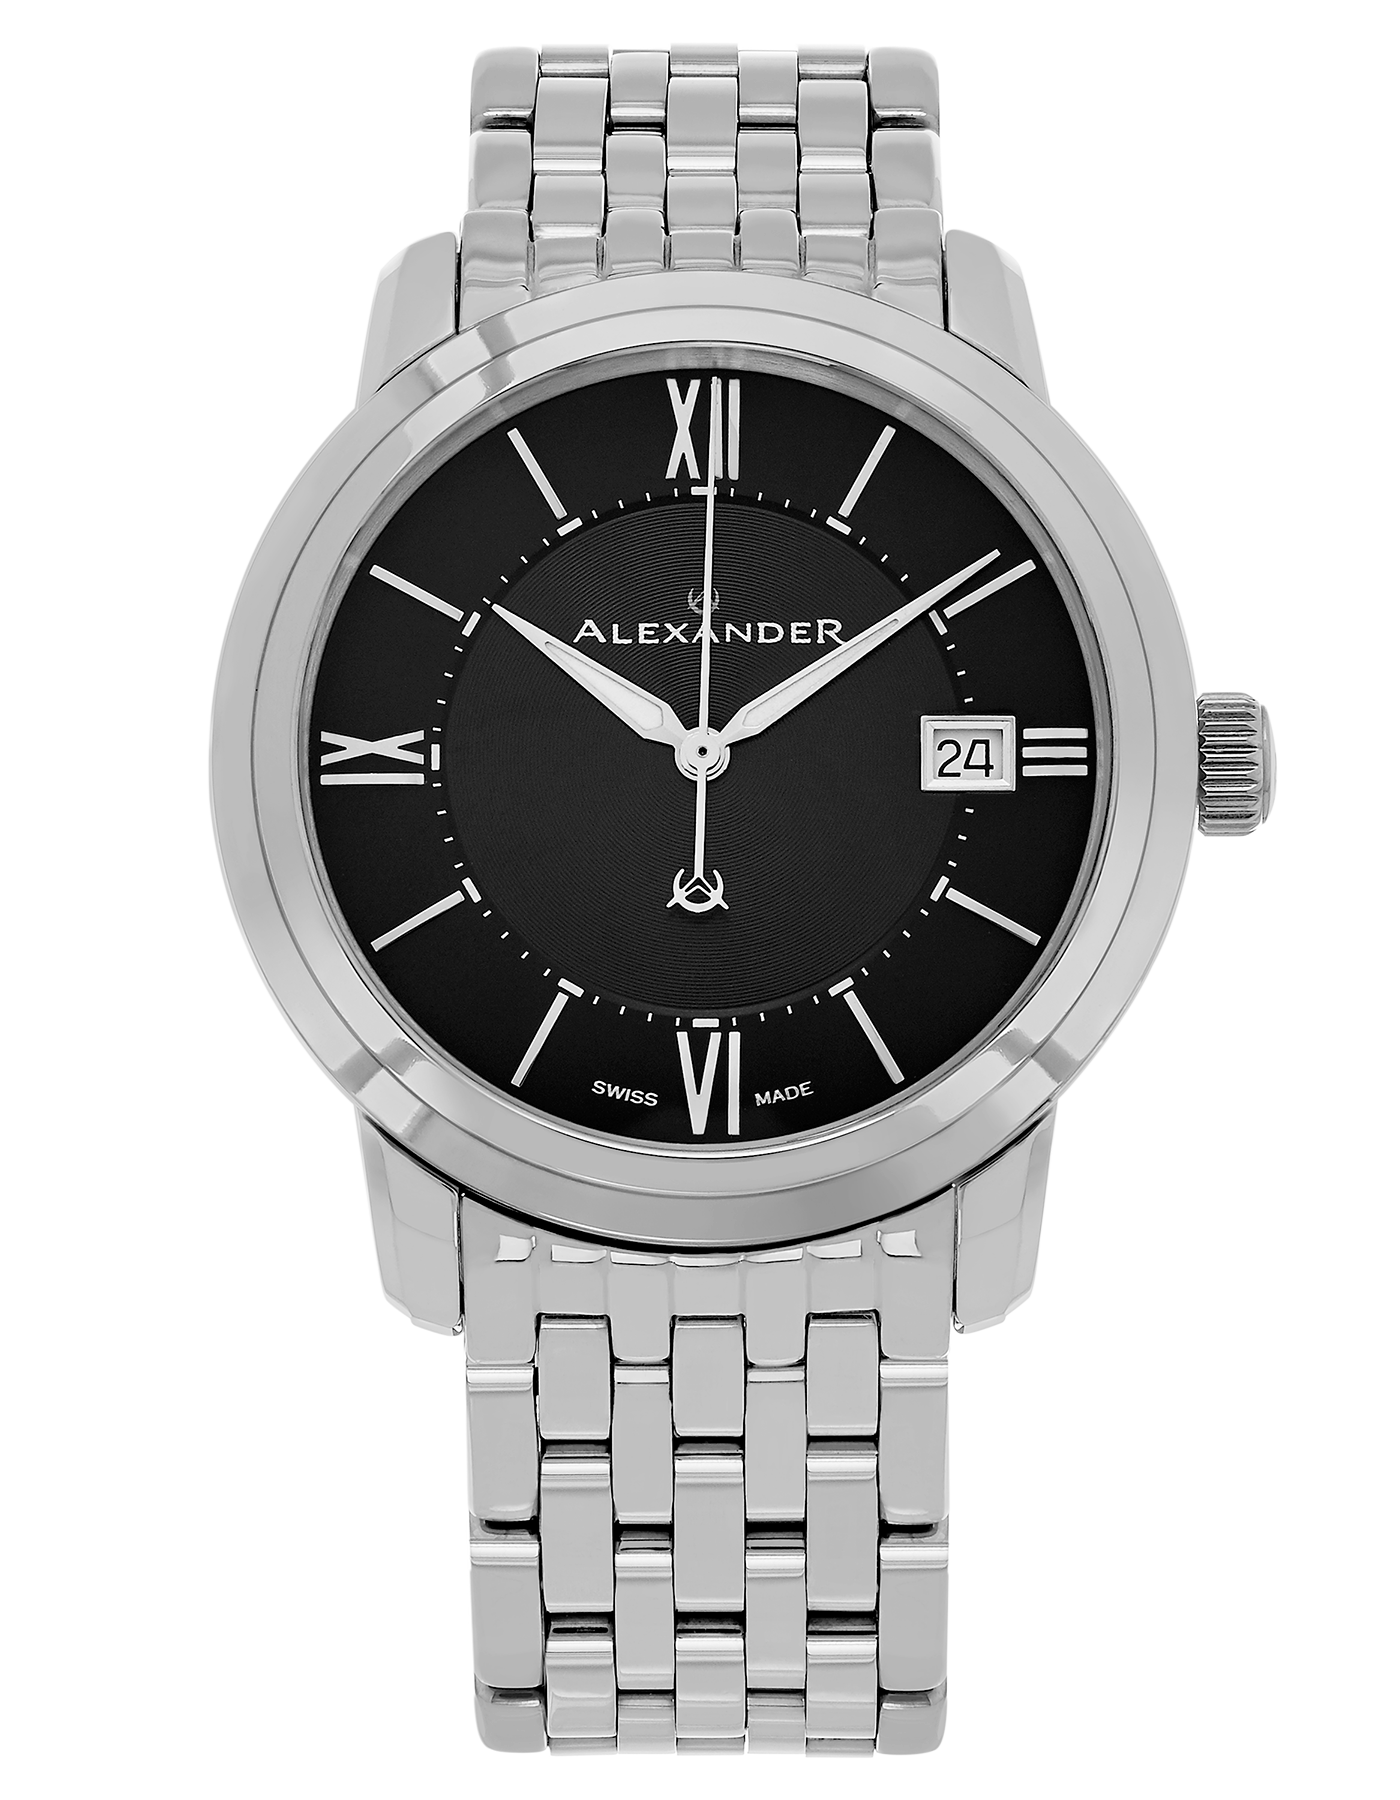 40% off stainless steel men's watch $432